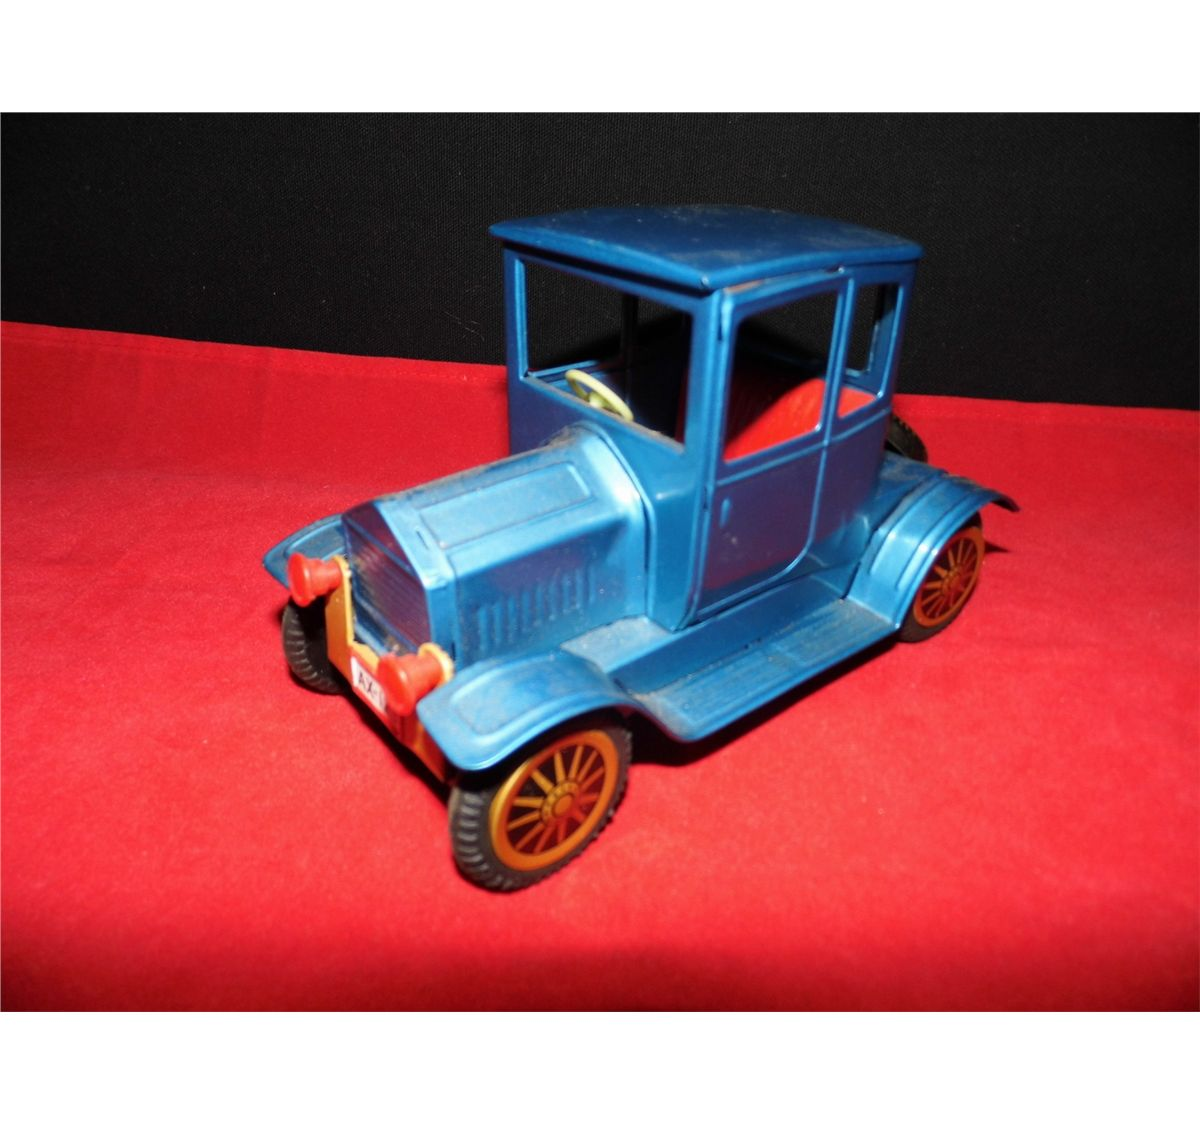 Car Made In Aluminum : Blue metal friction coupe car made in japan